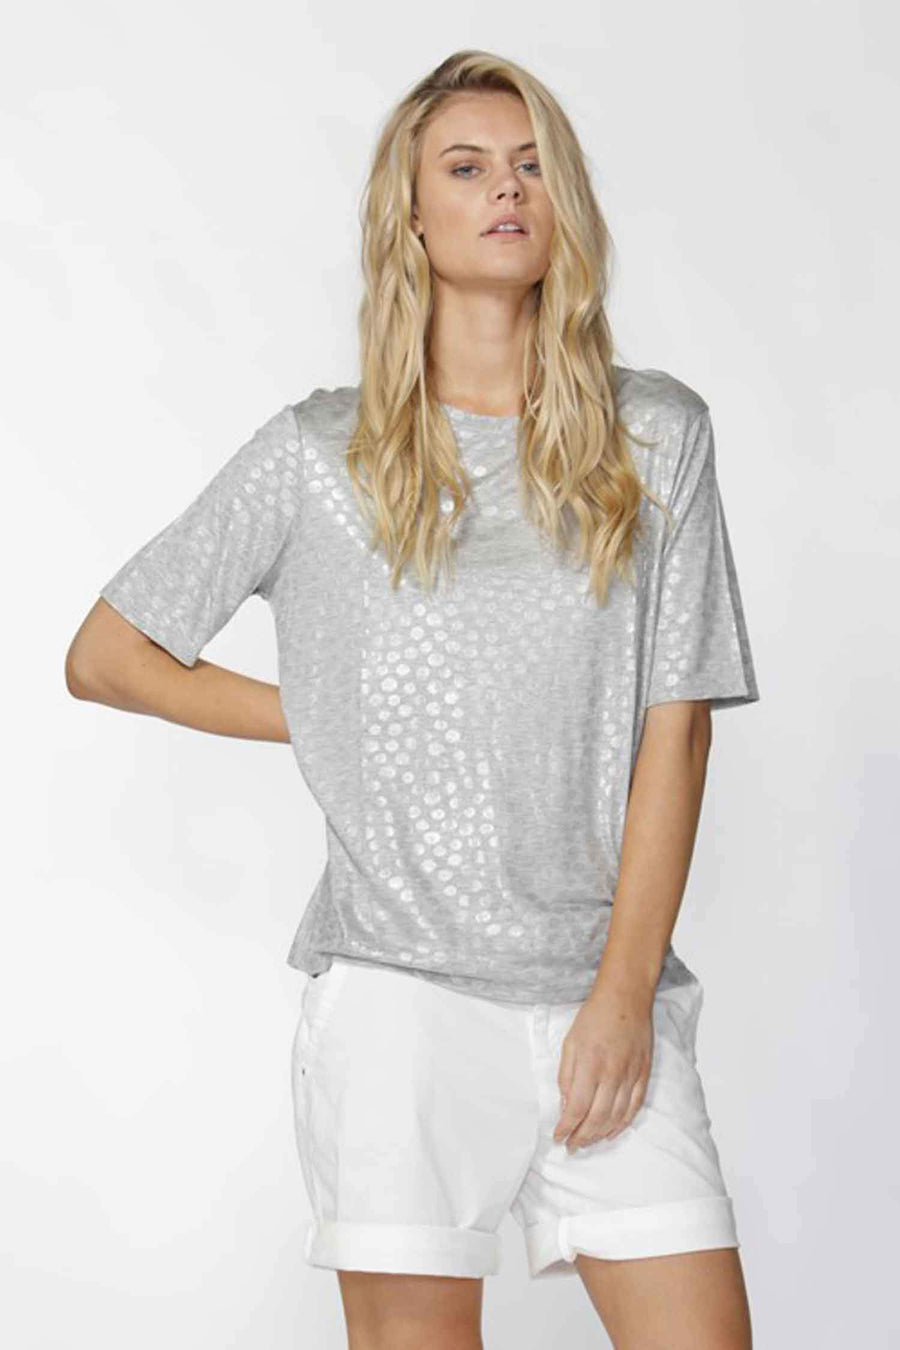 Ina Shiny Spots Tee in Silver Grey by Fate + Becker Frockaholics.com